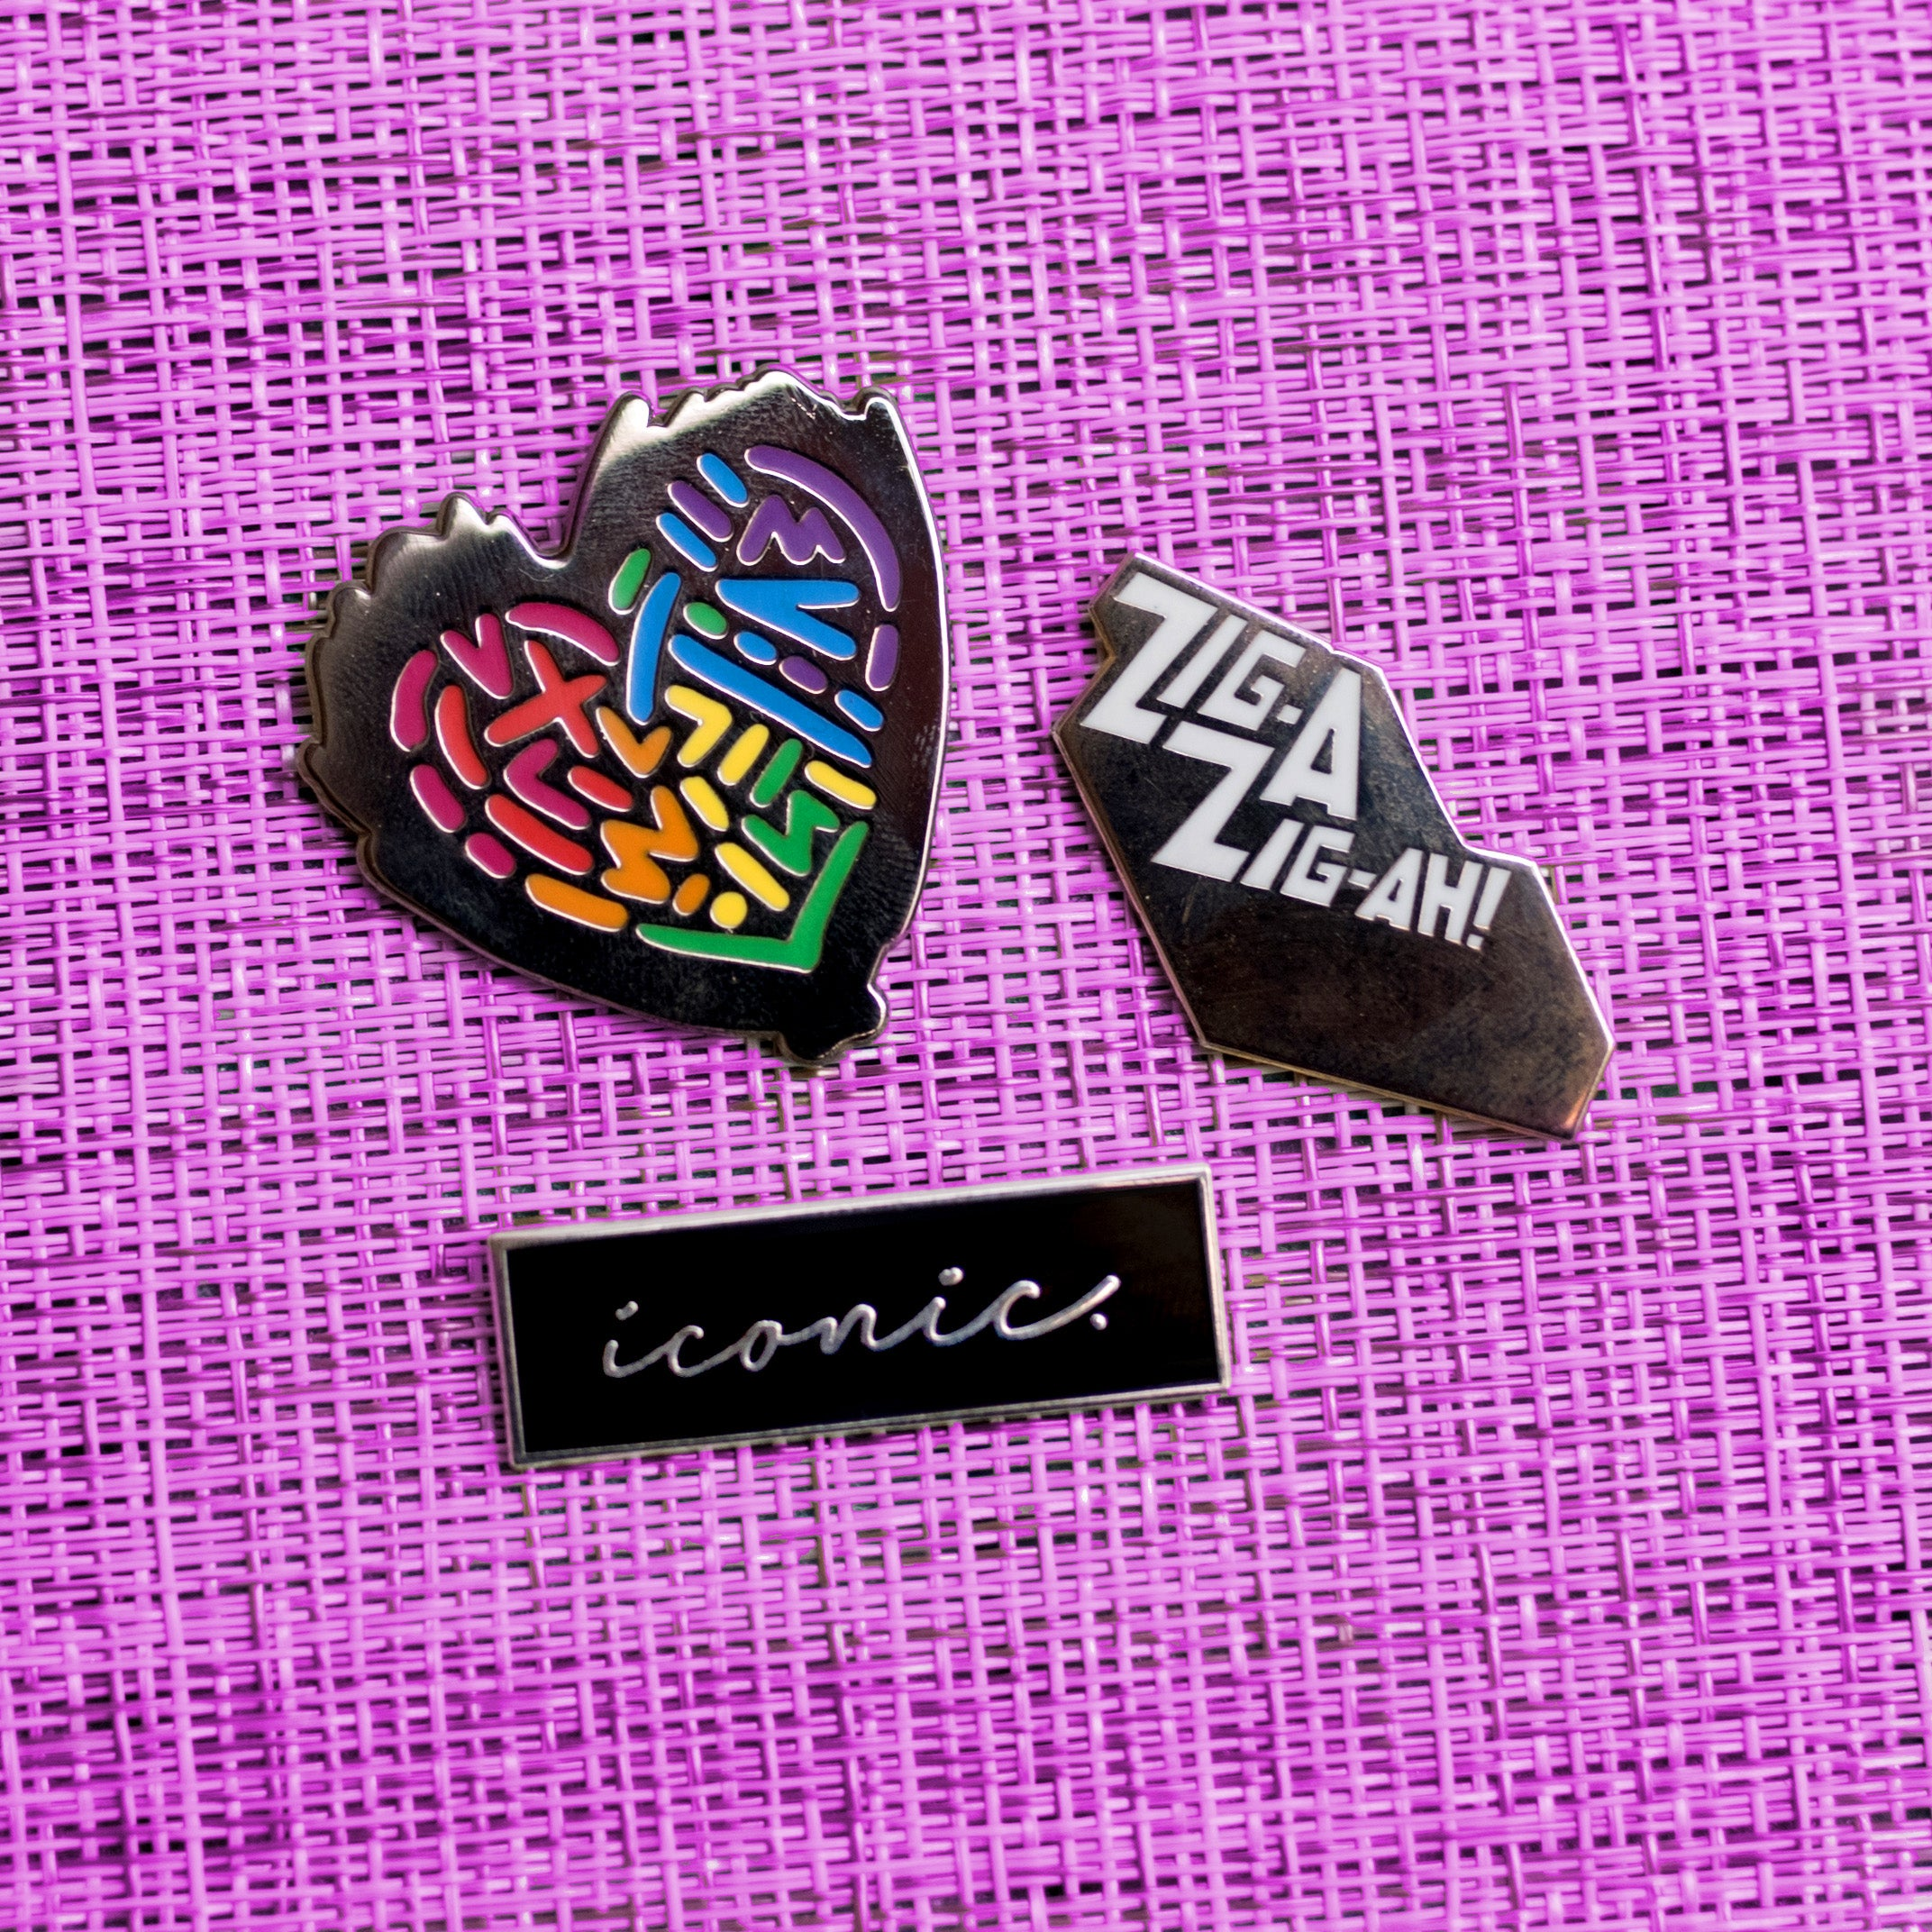 Messy Rainbow Heart Pin - GAYPIN'